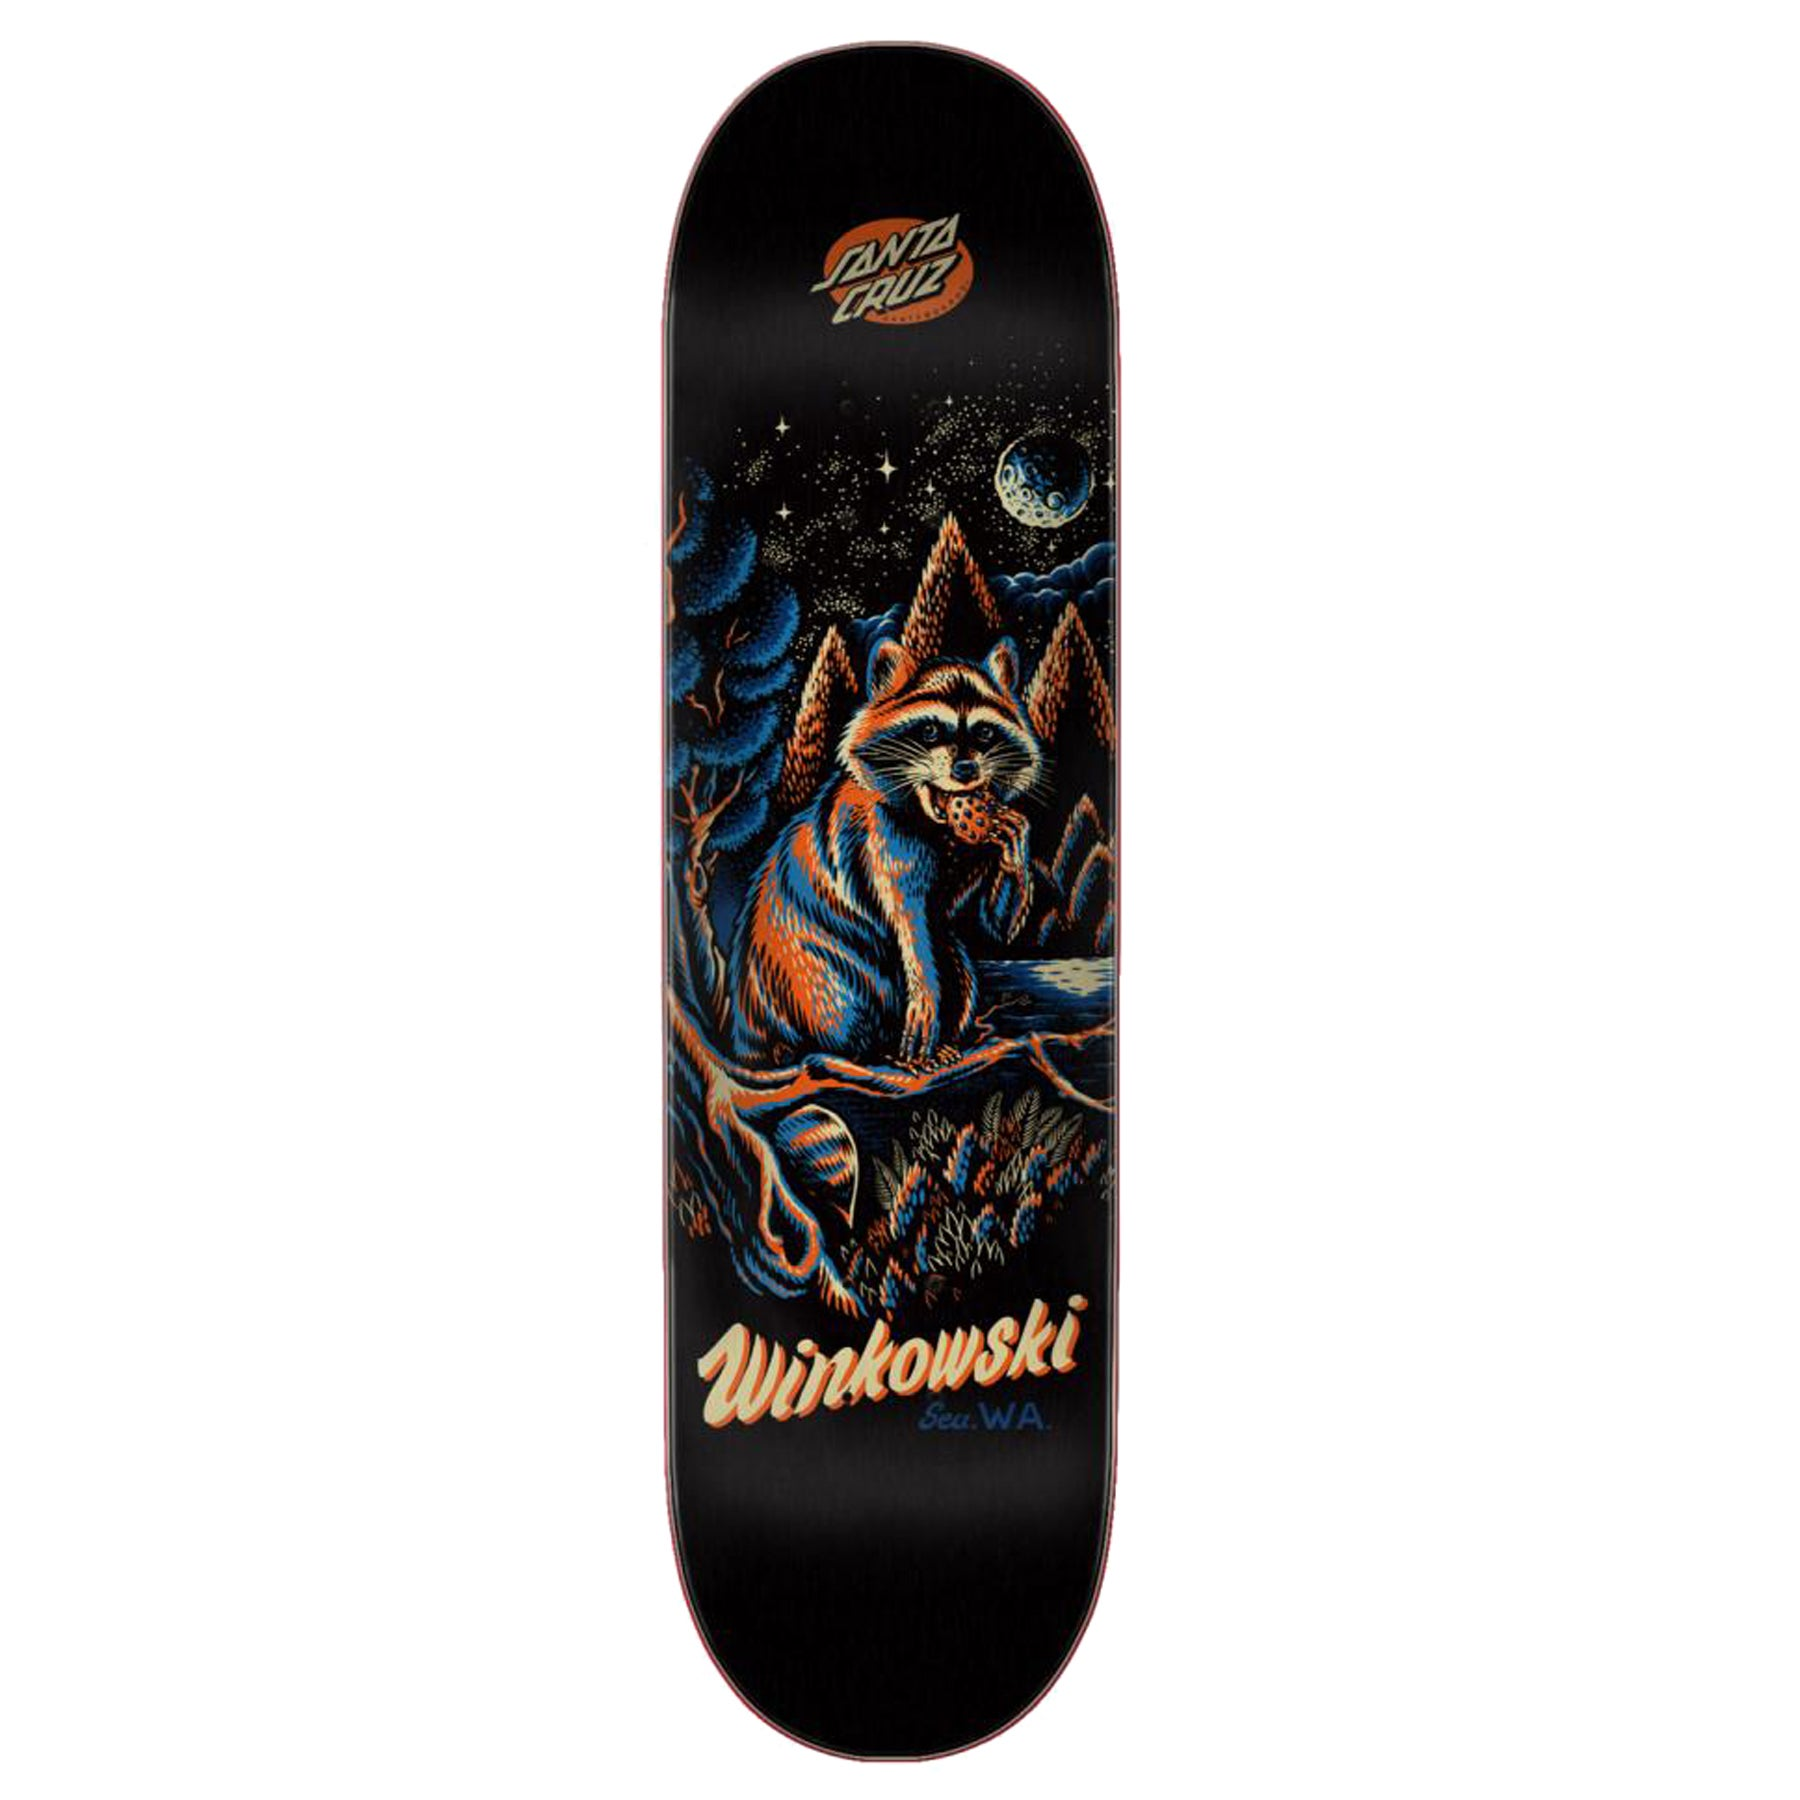 Santa Cruz Winkowski Trash Panda Black 8.6 Inch Skateboard Deck - Black